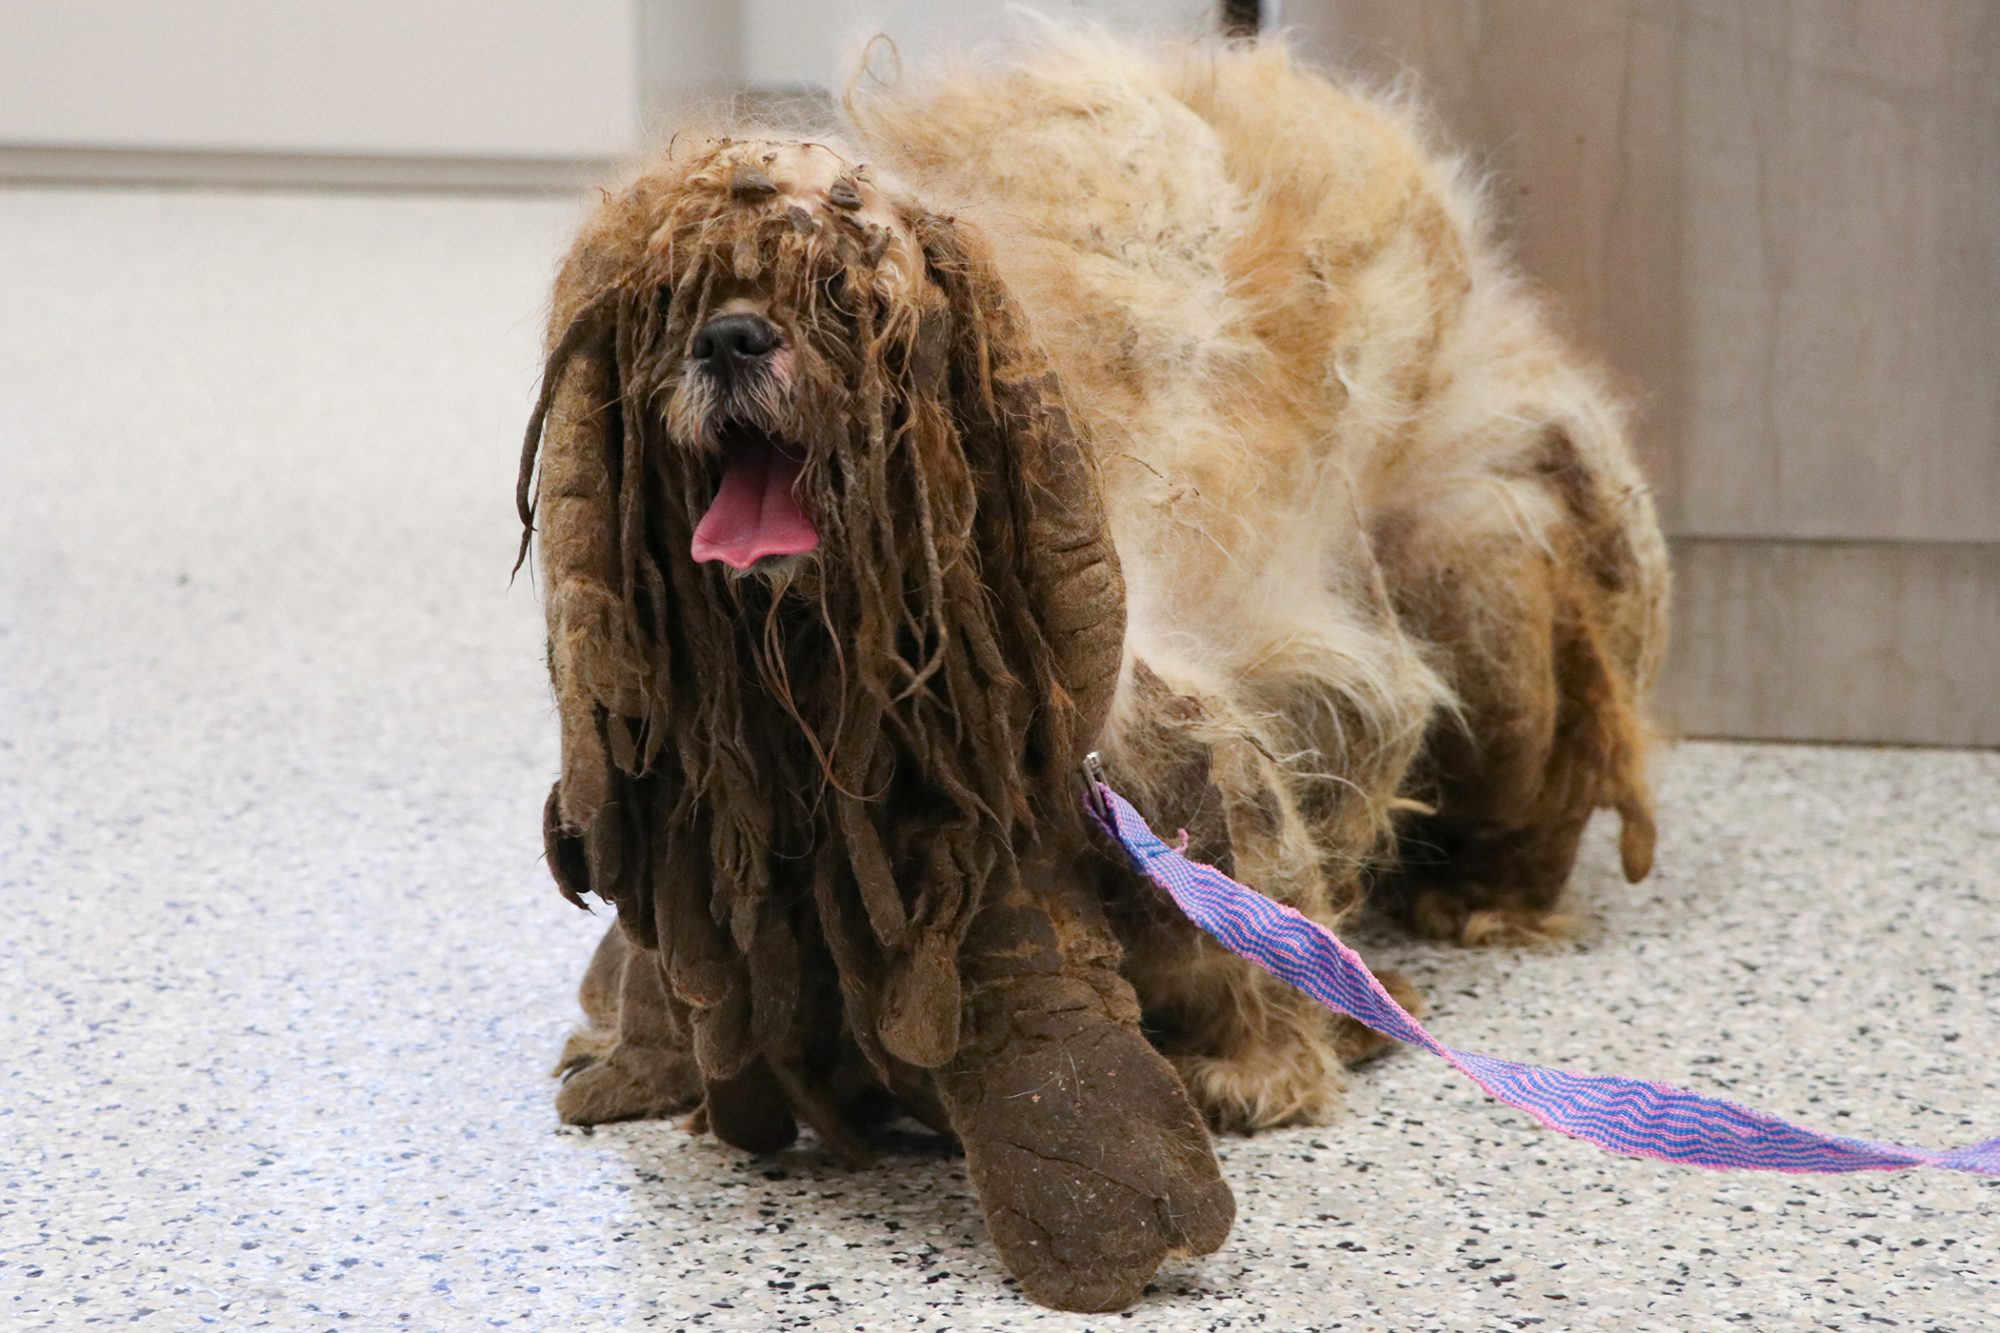 Simon with long, heavy, matted hair